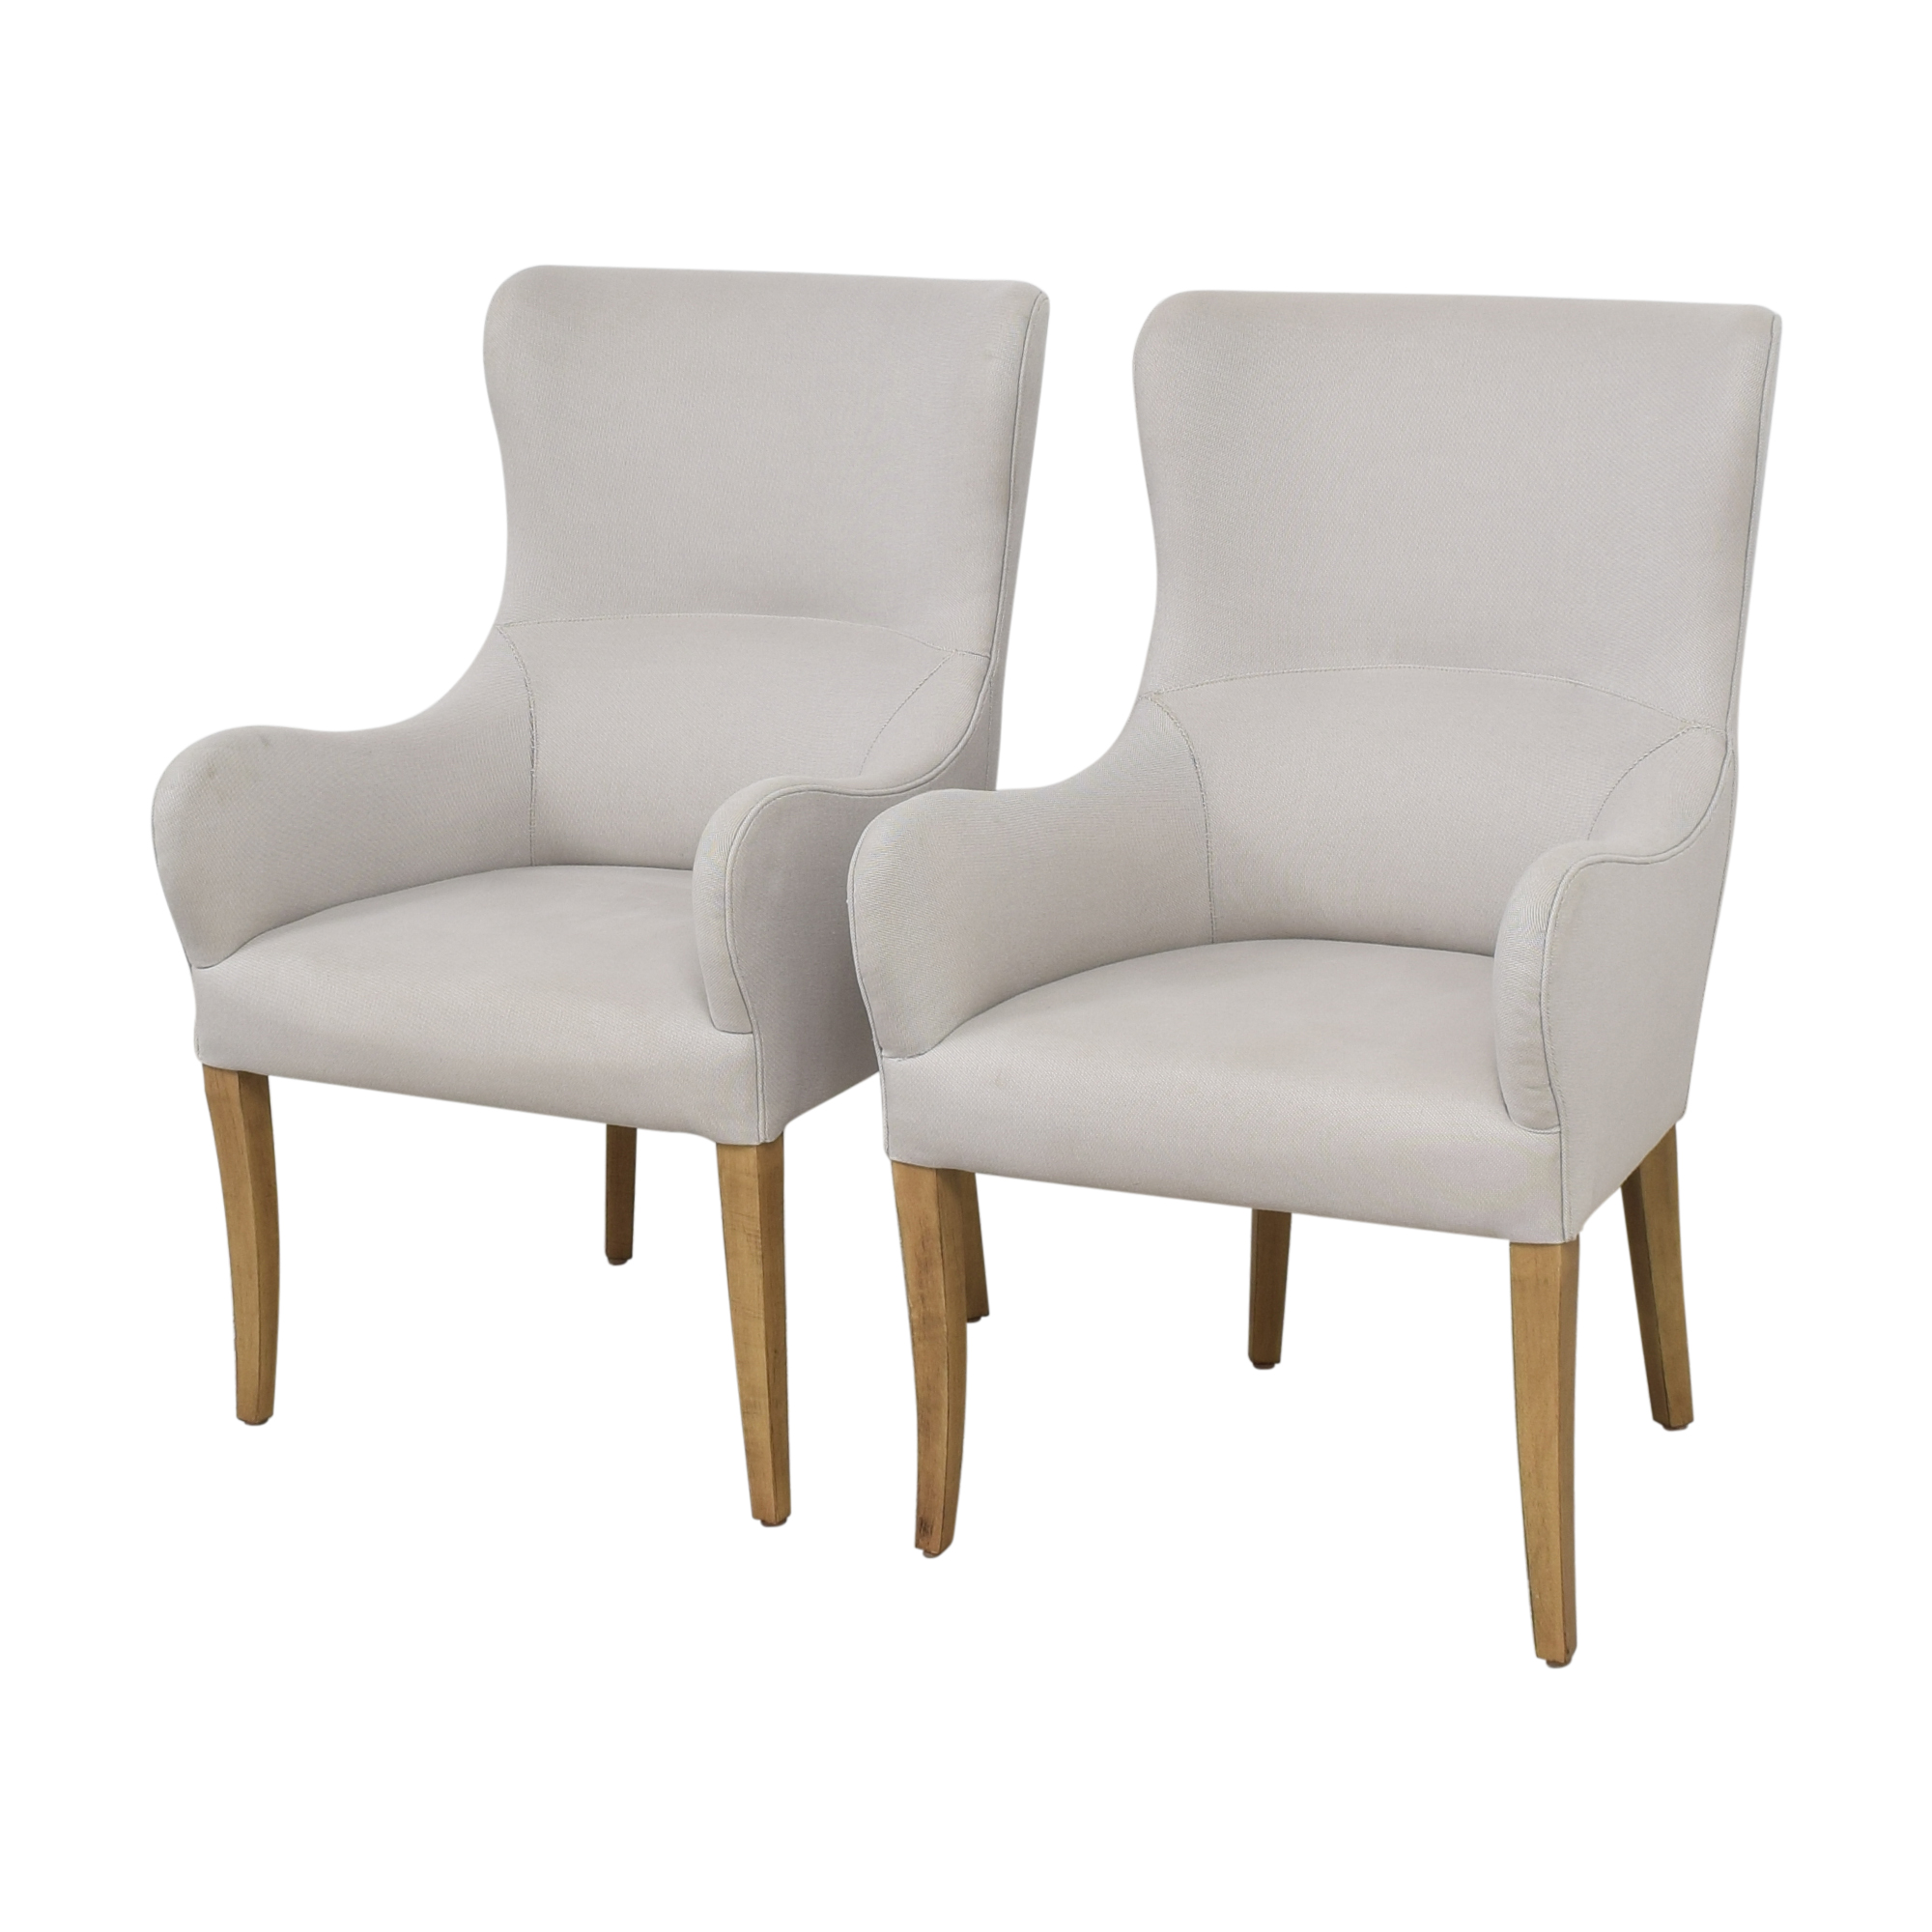 59 Off Lillian August Lillian August Couture Upholstered Dining Arm Chairs Chairs